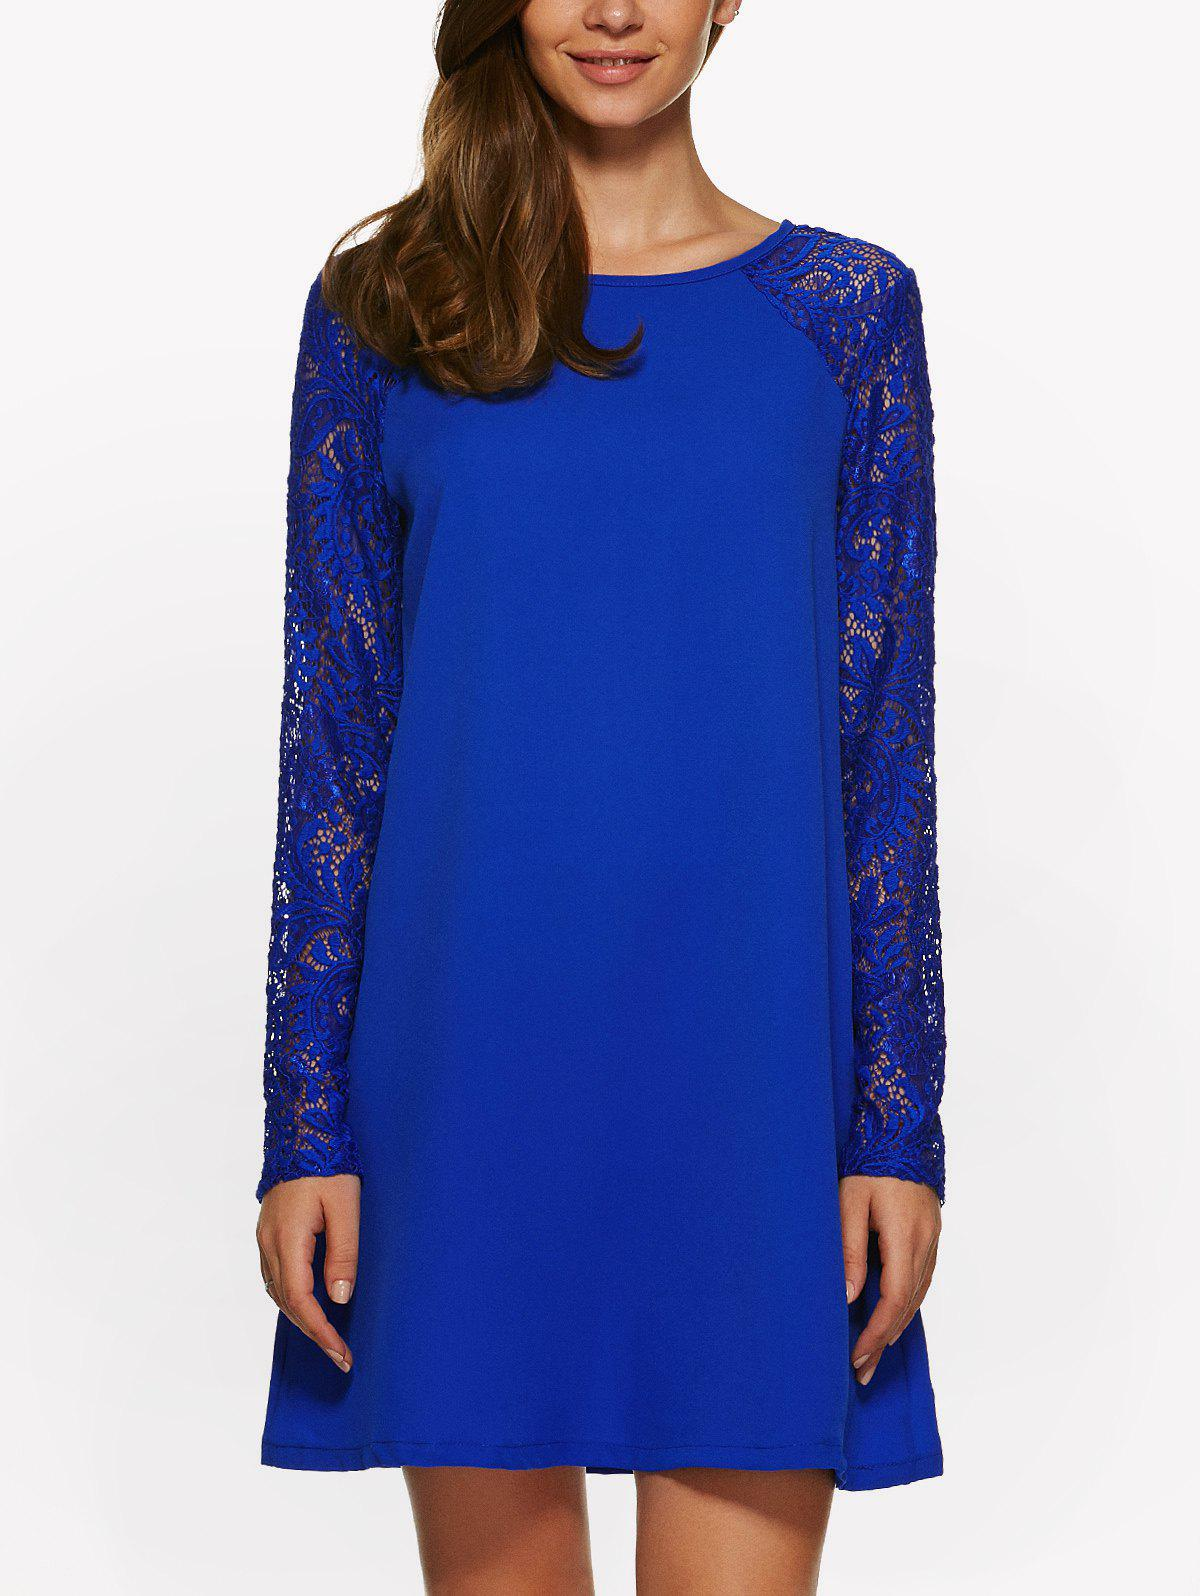 Long Sleeve Lace Jewel Neck Dress - SAPPHIRE BLUE XL